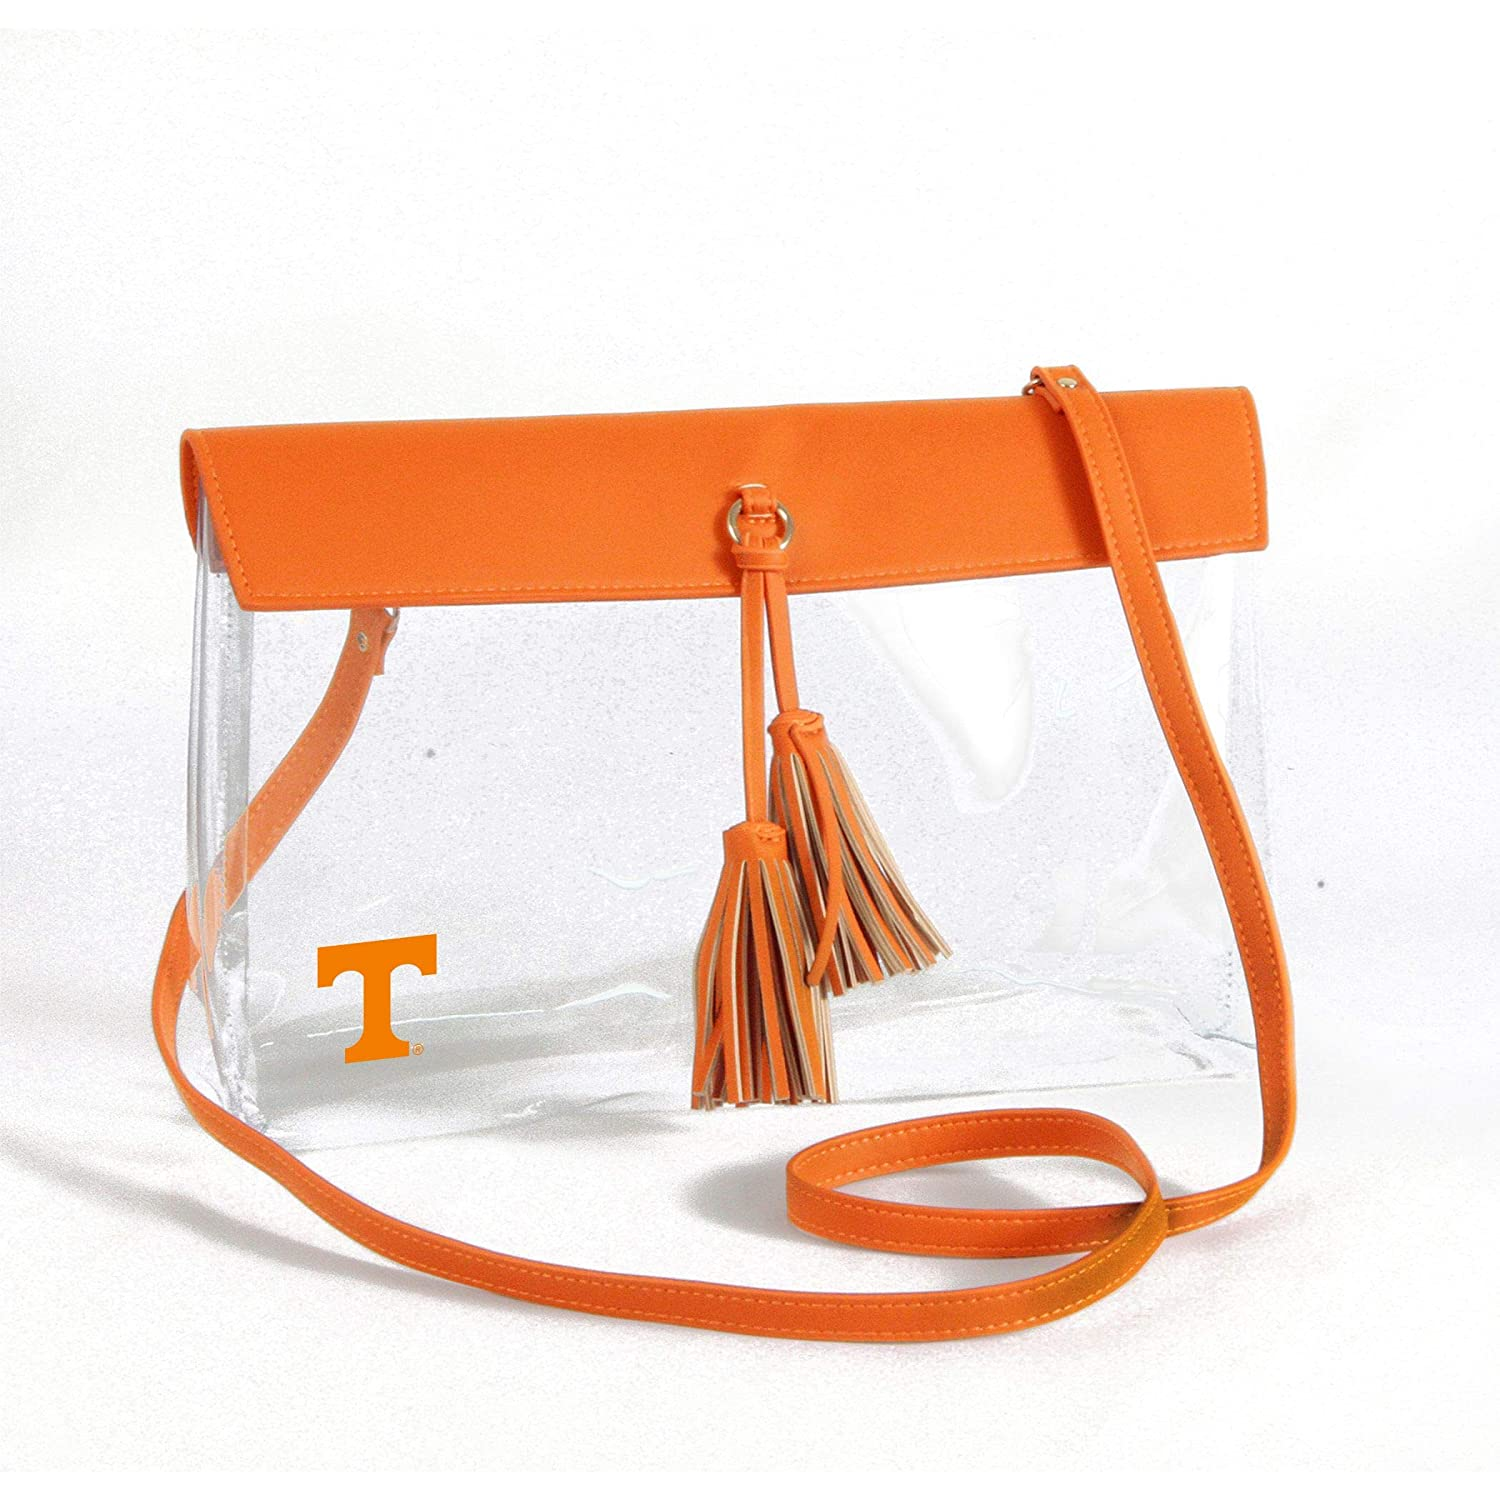 Vegan Leather Trim and Tassels Desden Miami Hurricanes Clear Handbag with Logo